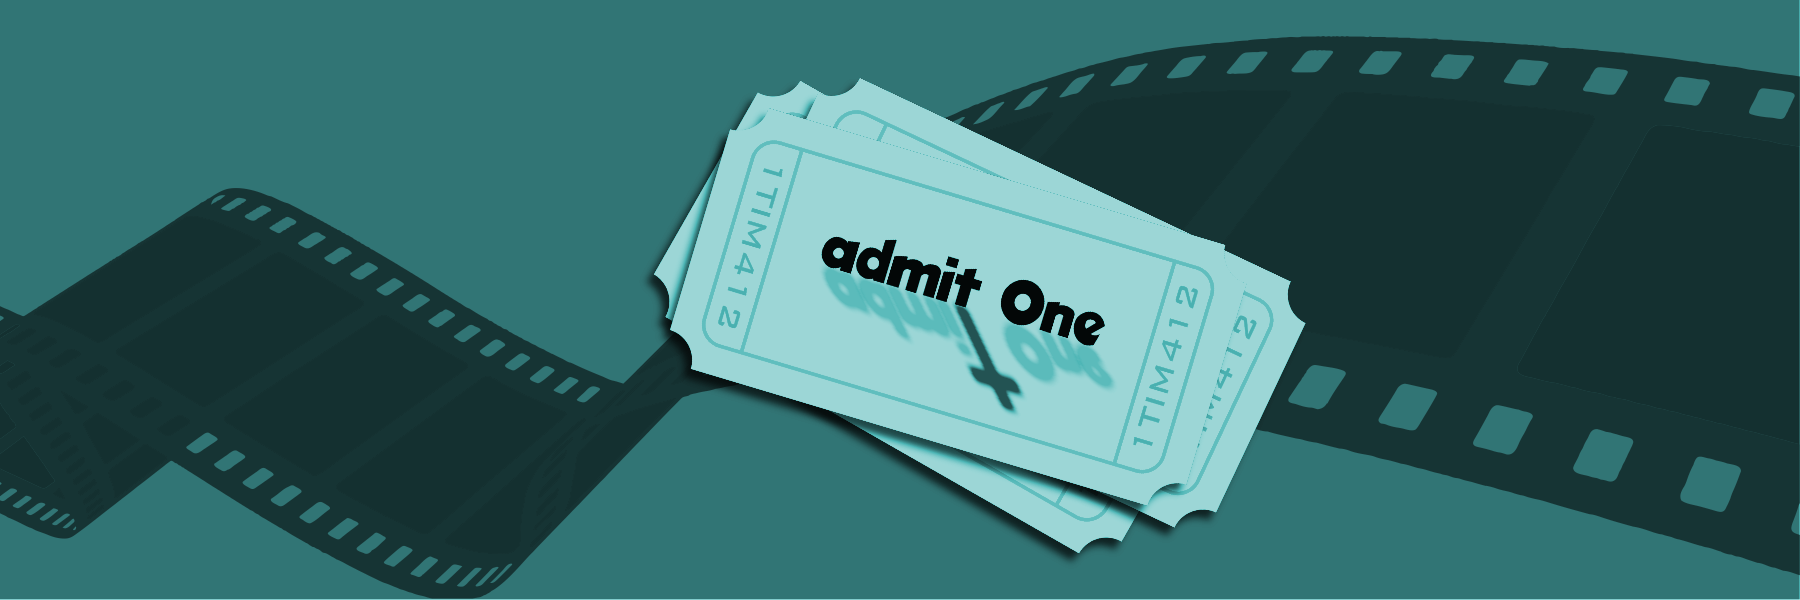 admit One*a film and discussion group for teenagers*Learn more